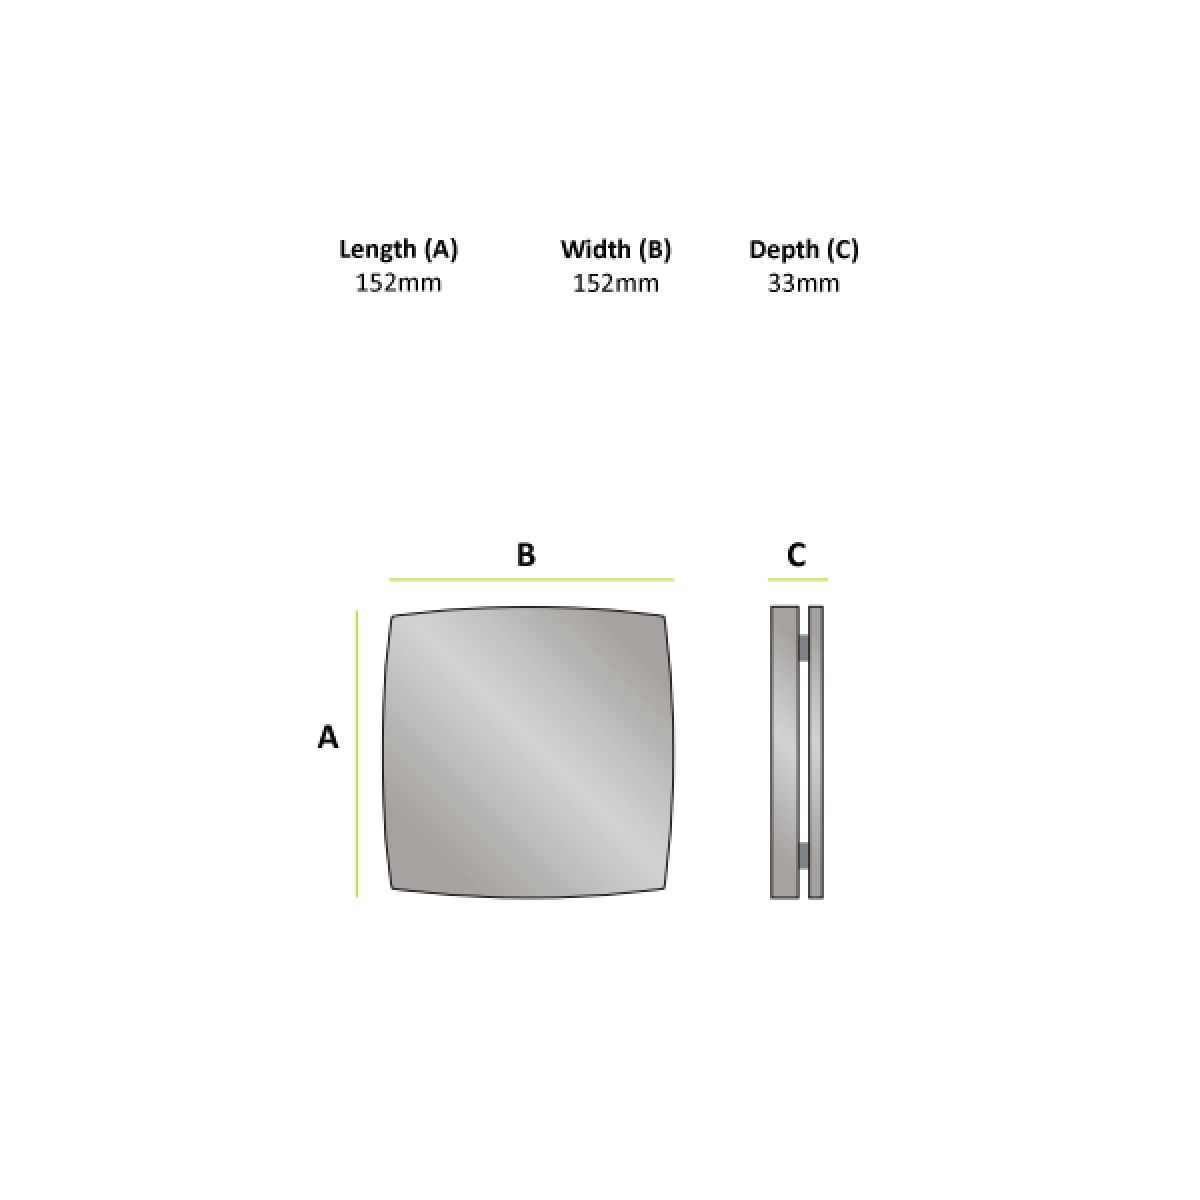 HiB Breeze SELV Wall Mounted Chrome Wet Room Extractor Fan Dimensions